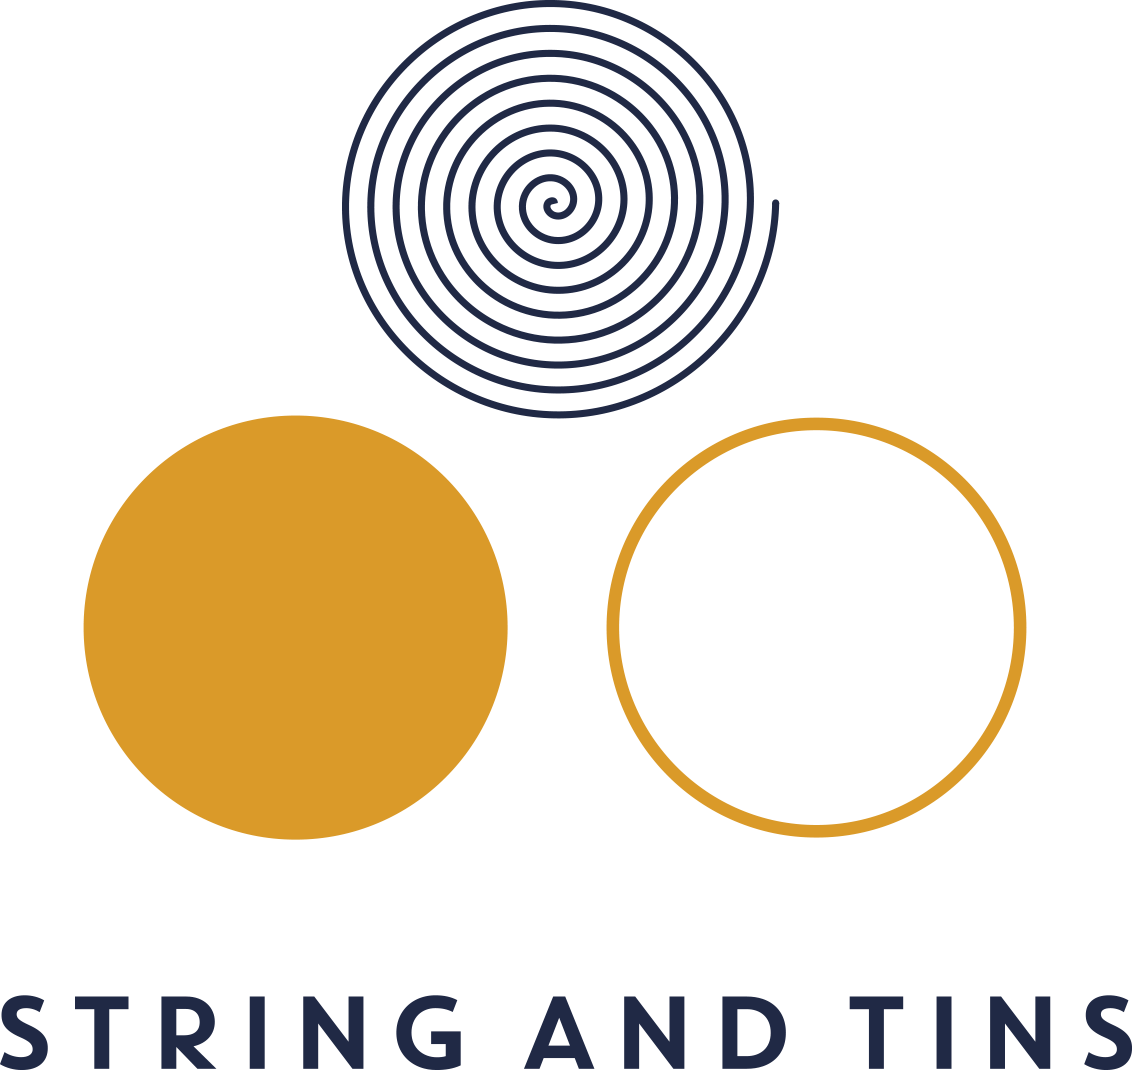 String and Tins